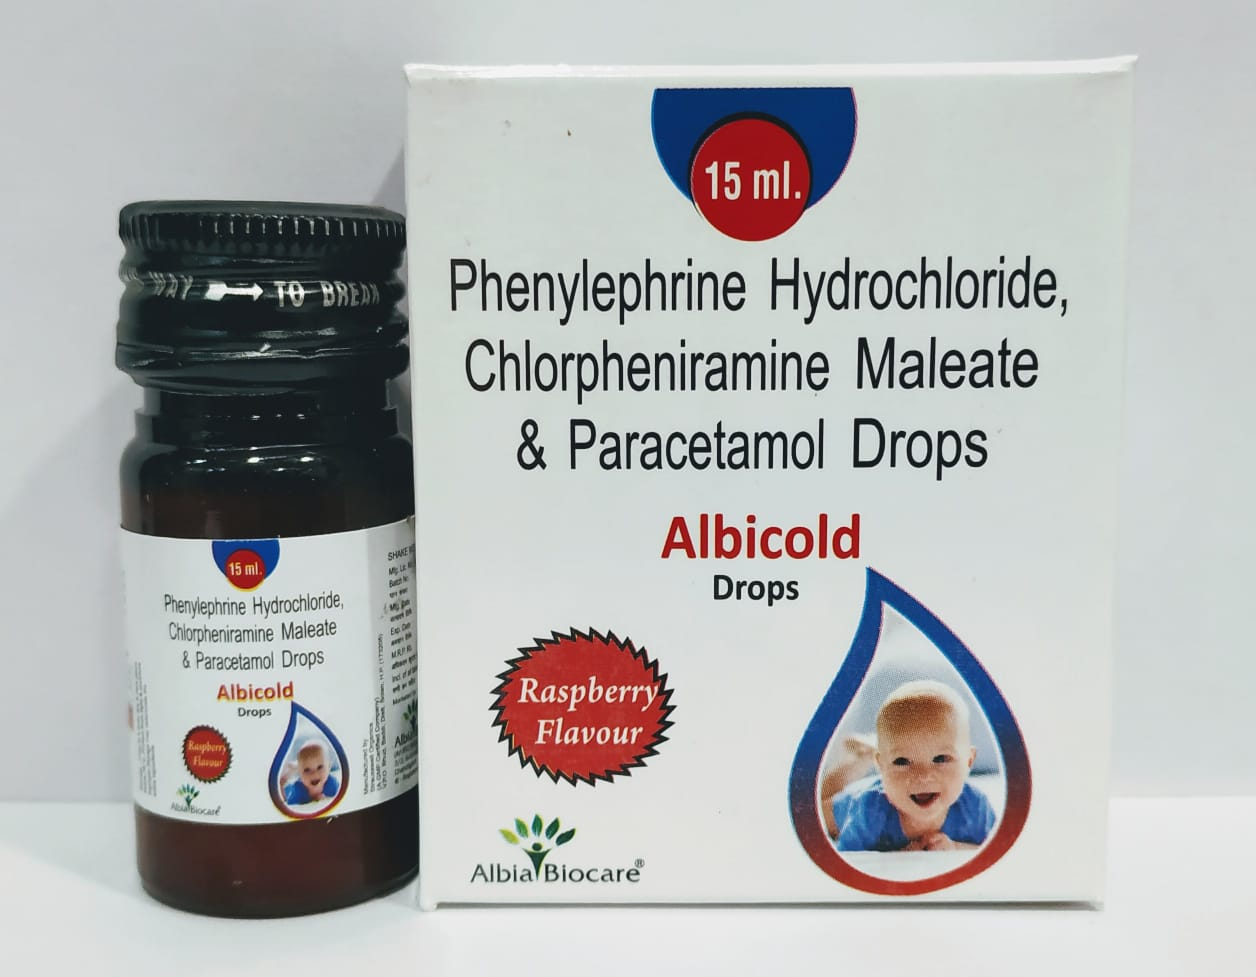 ALBICOLD Drops | Phenylepherine 2.5 mg + Paracetamol 125 mg + CPM 1 mg (per ml)